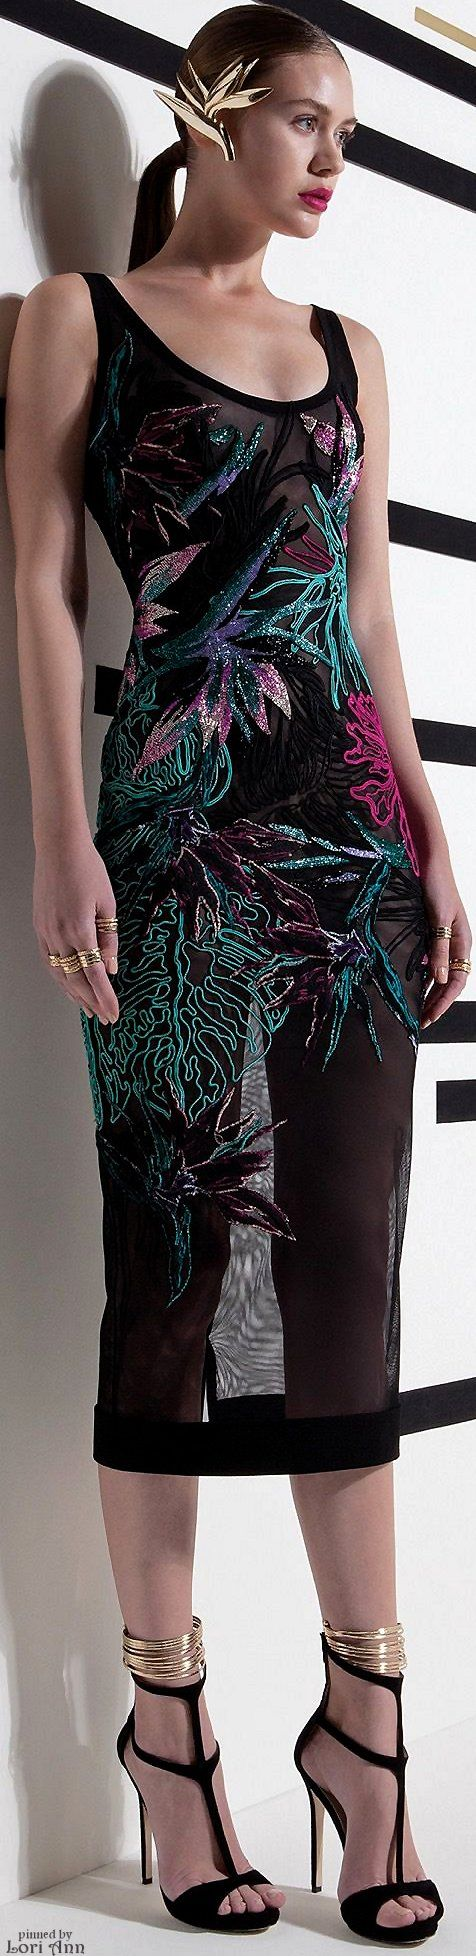 """Basil Soda Spring 2016 RTW .. heels and dress are a great look together....""""How to make those high heels comfortable - you tube  at    https://www.youtube.com/watch?v=OwGBW17fdxU   ...also see hopscotch in heels!!..."""